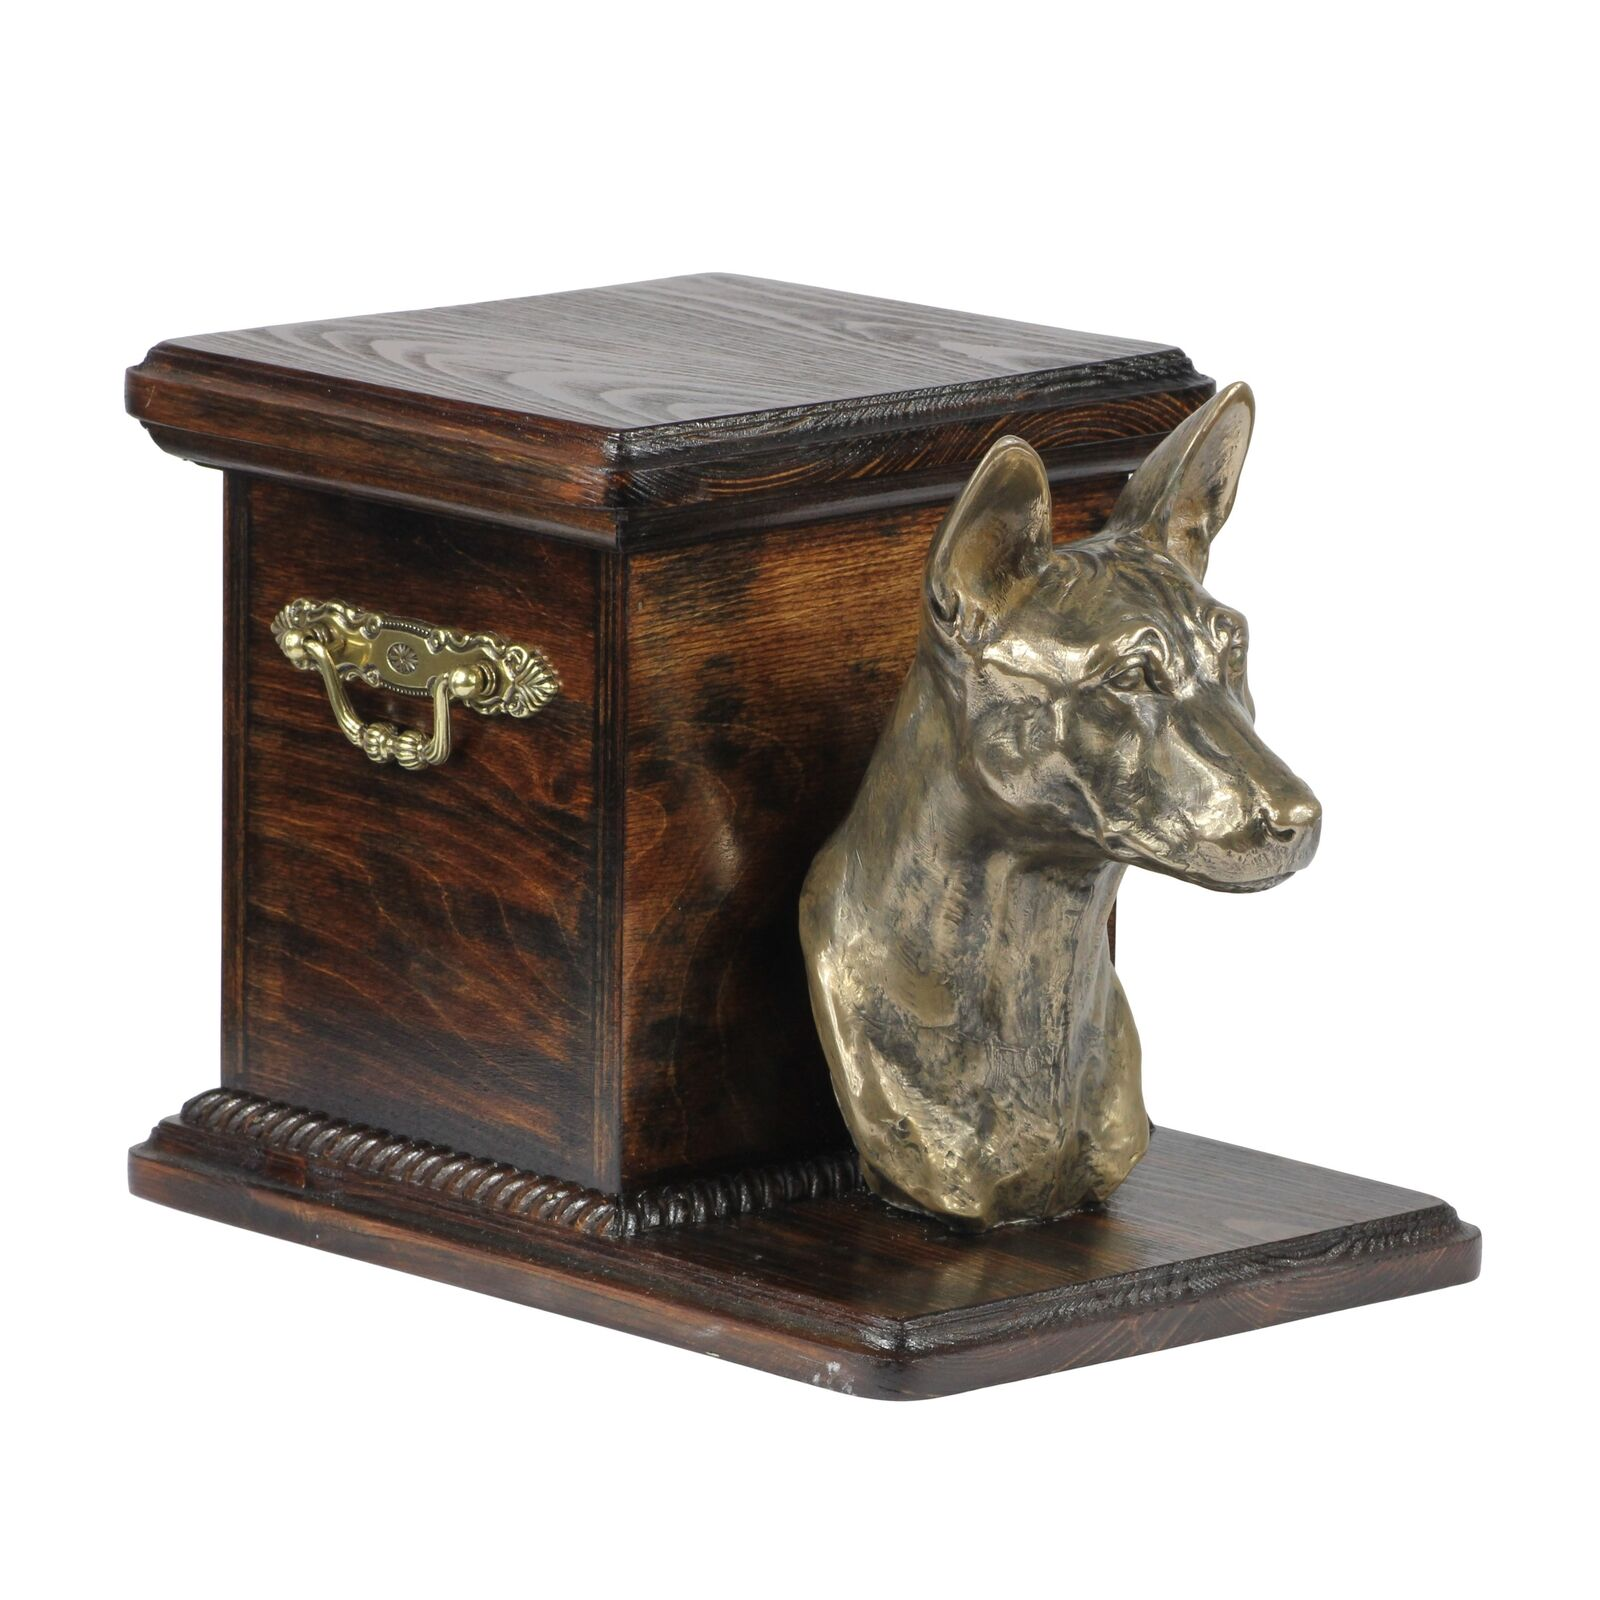 Basenji - wooden exclusive urn for dog with statue, Art Dog type 3